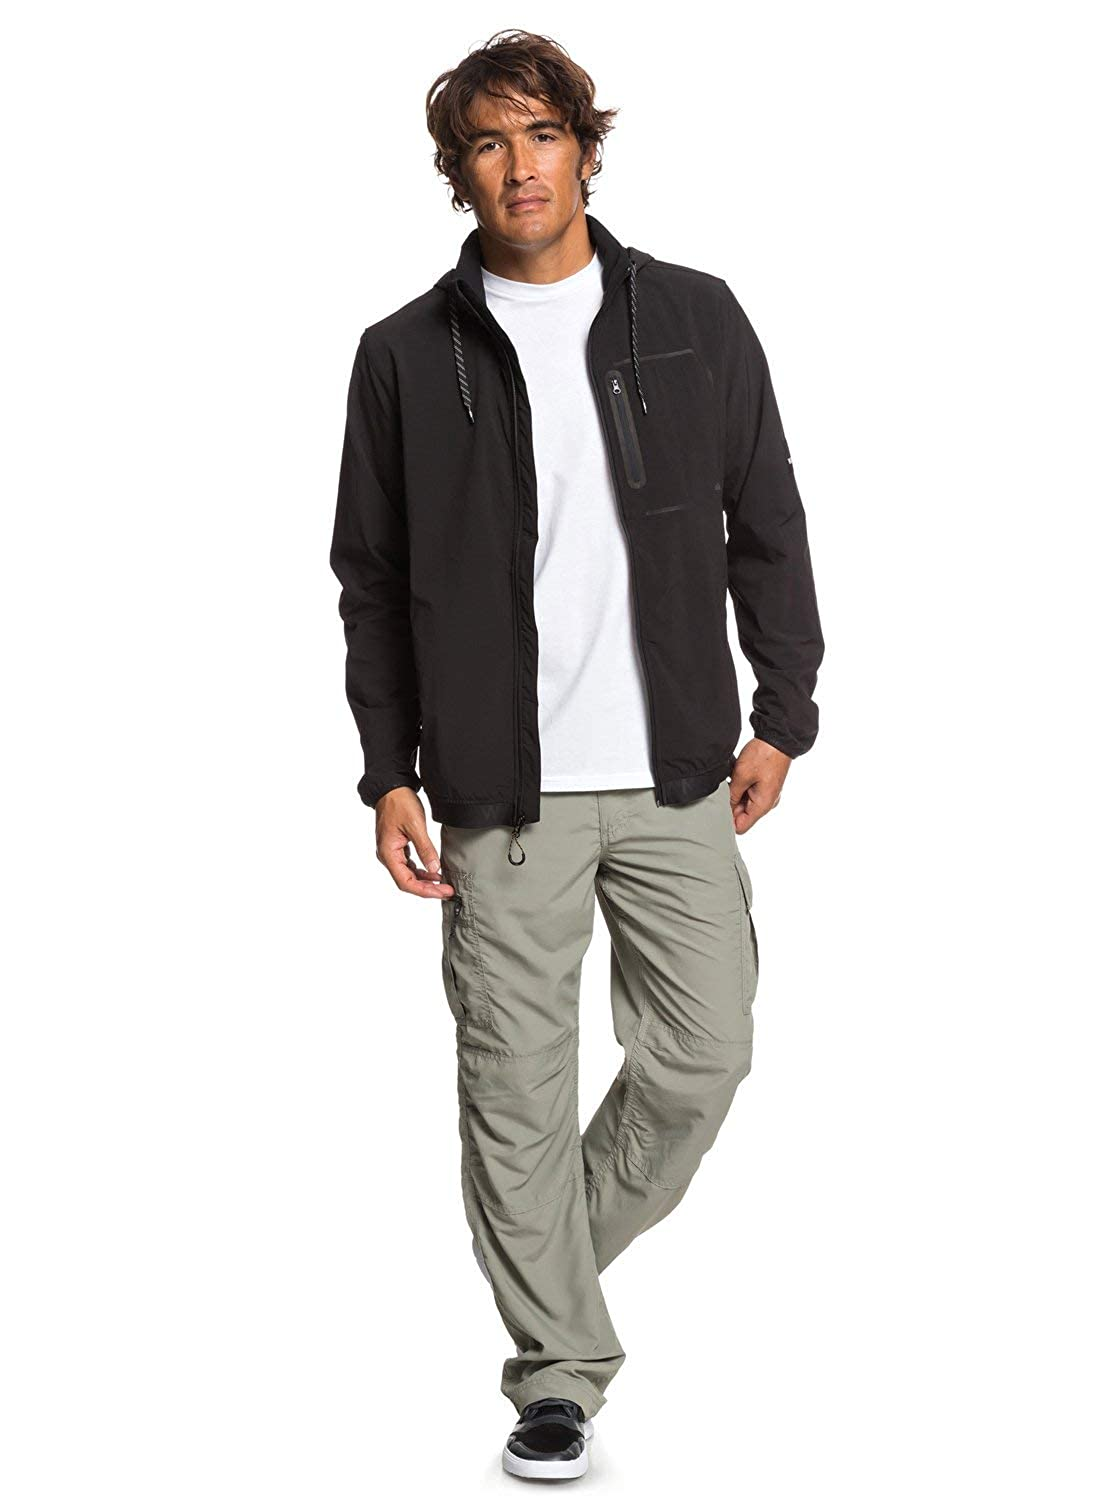 Amazon.com: Quiksilver Paddle 3 - Chaqueta para hombre: Clothing